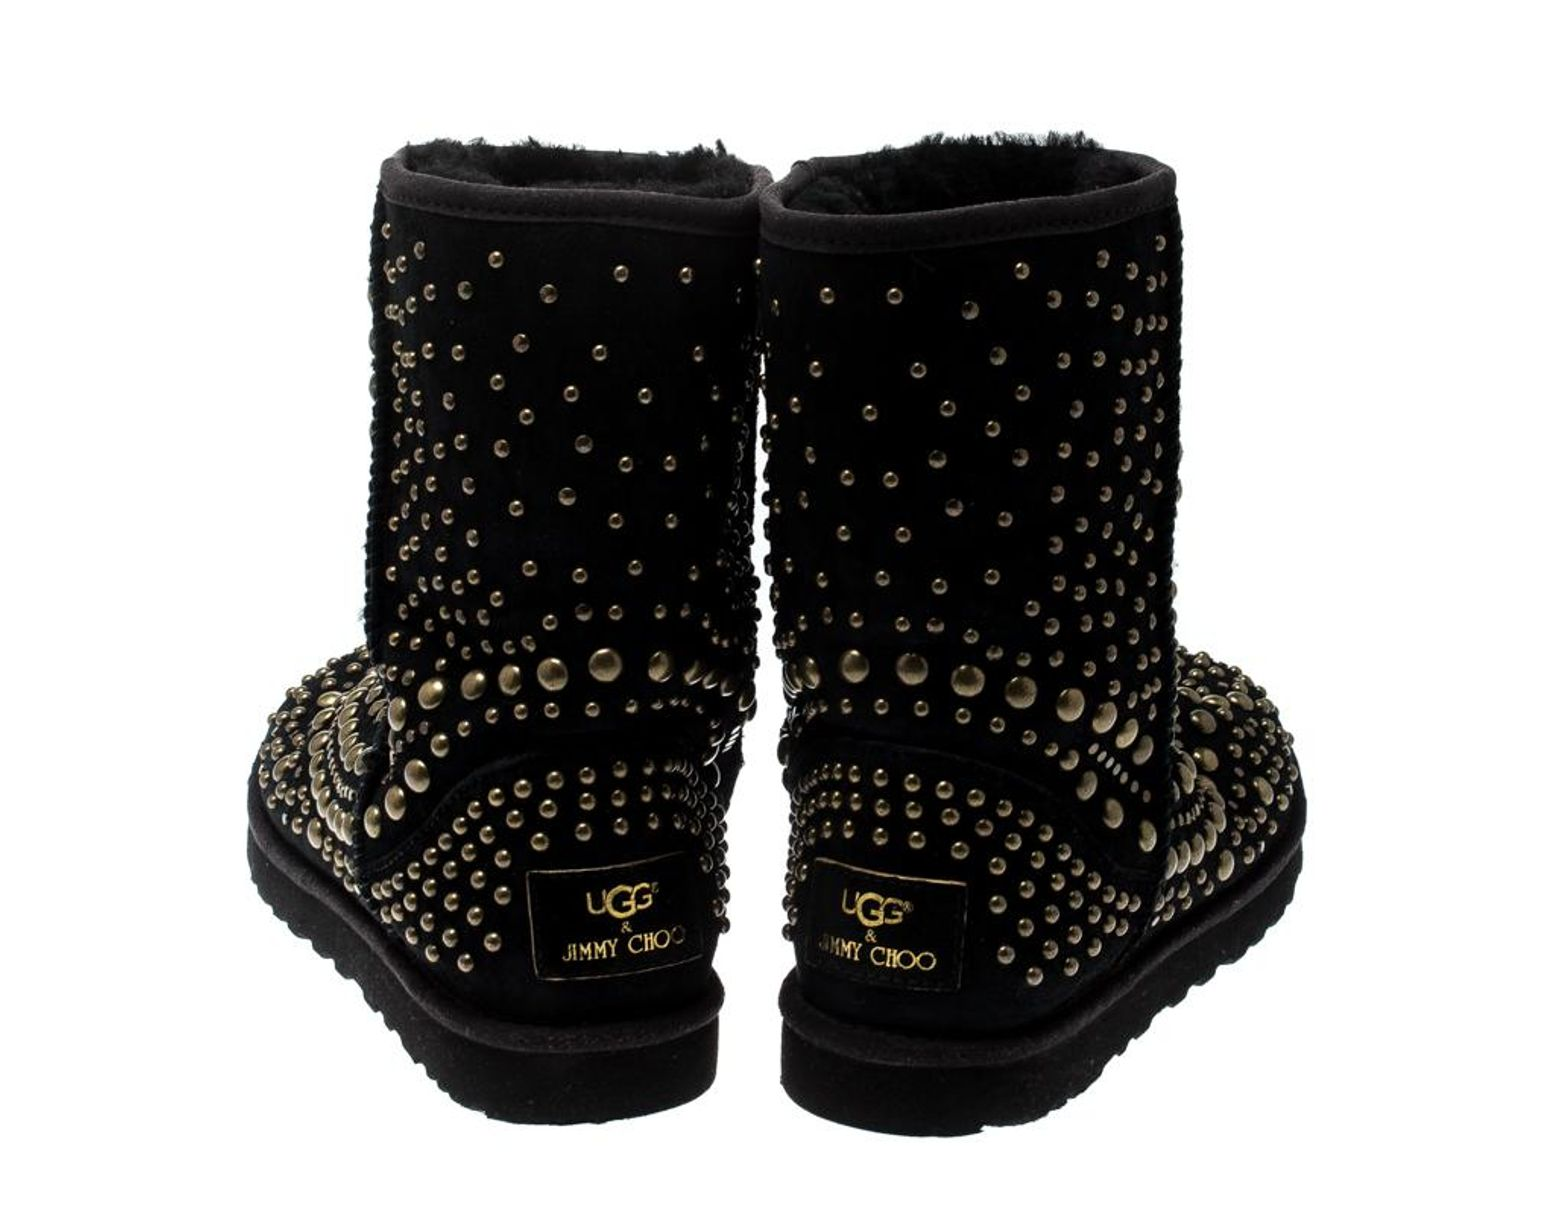 c7b15290845 Women's X Uggs Black Studded Suede Mandah Boots Size 40